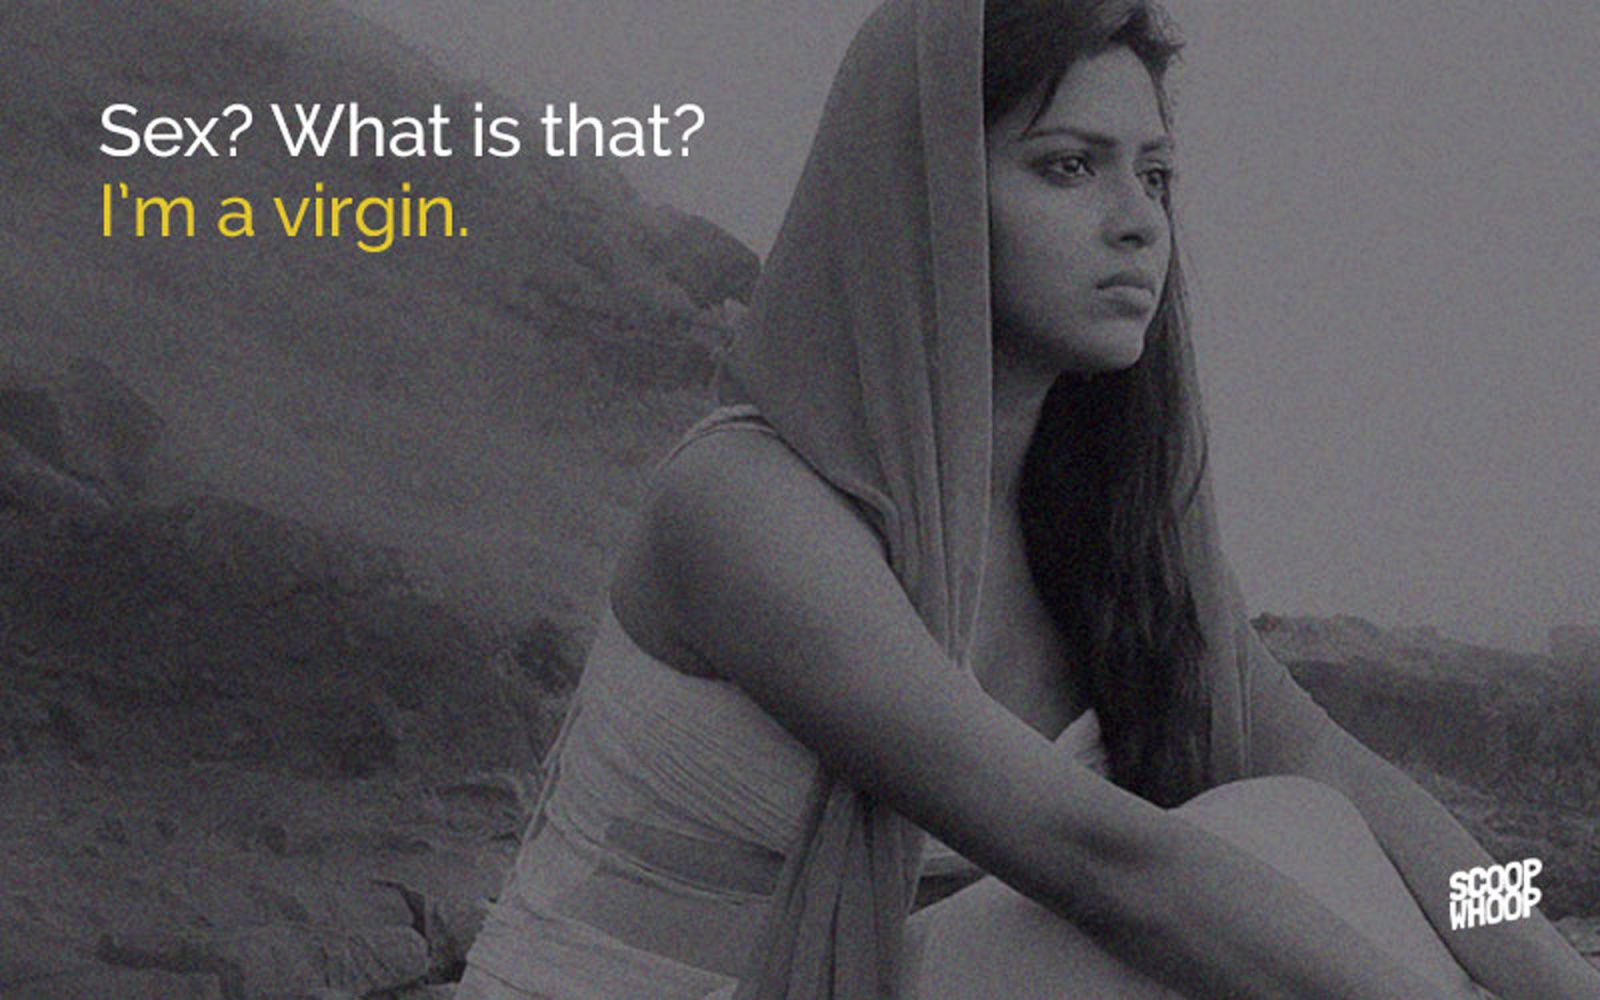 14 Beliefs About Indian Women and Sex That Need to Die